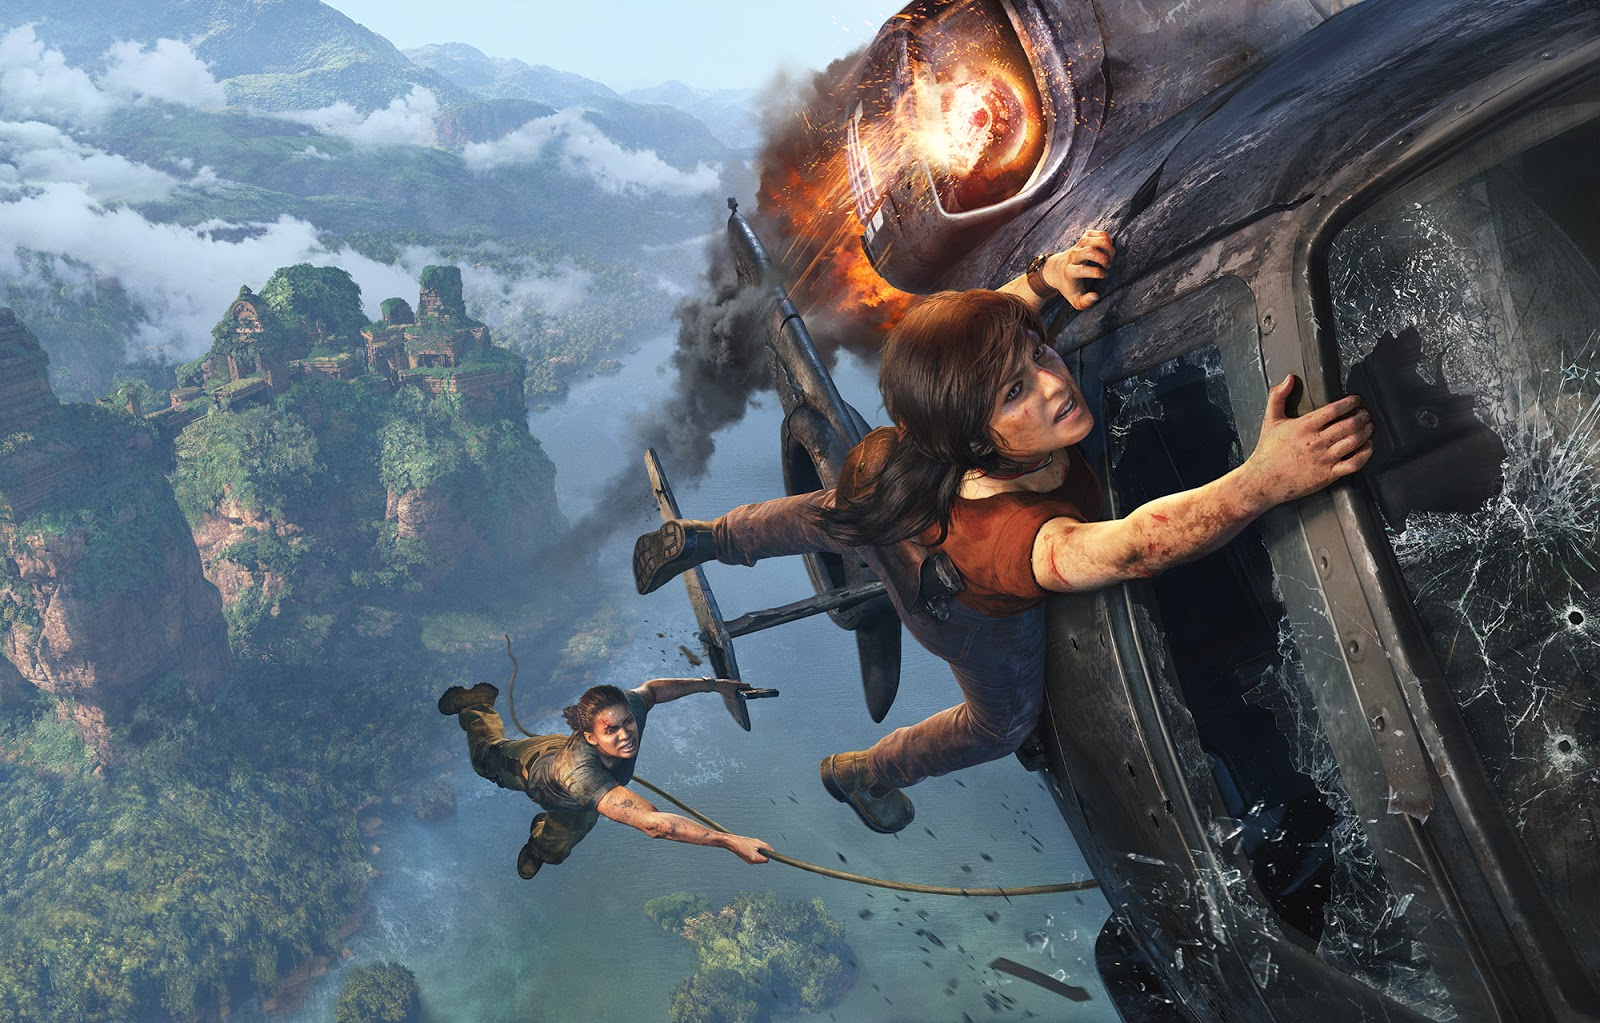 Comparten espectacular artwork de acción de Uncharted: El Legado Perdido